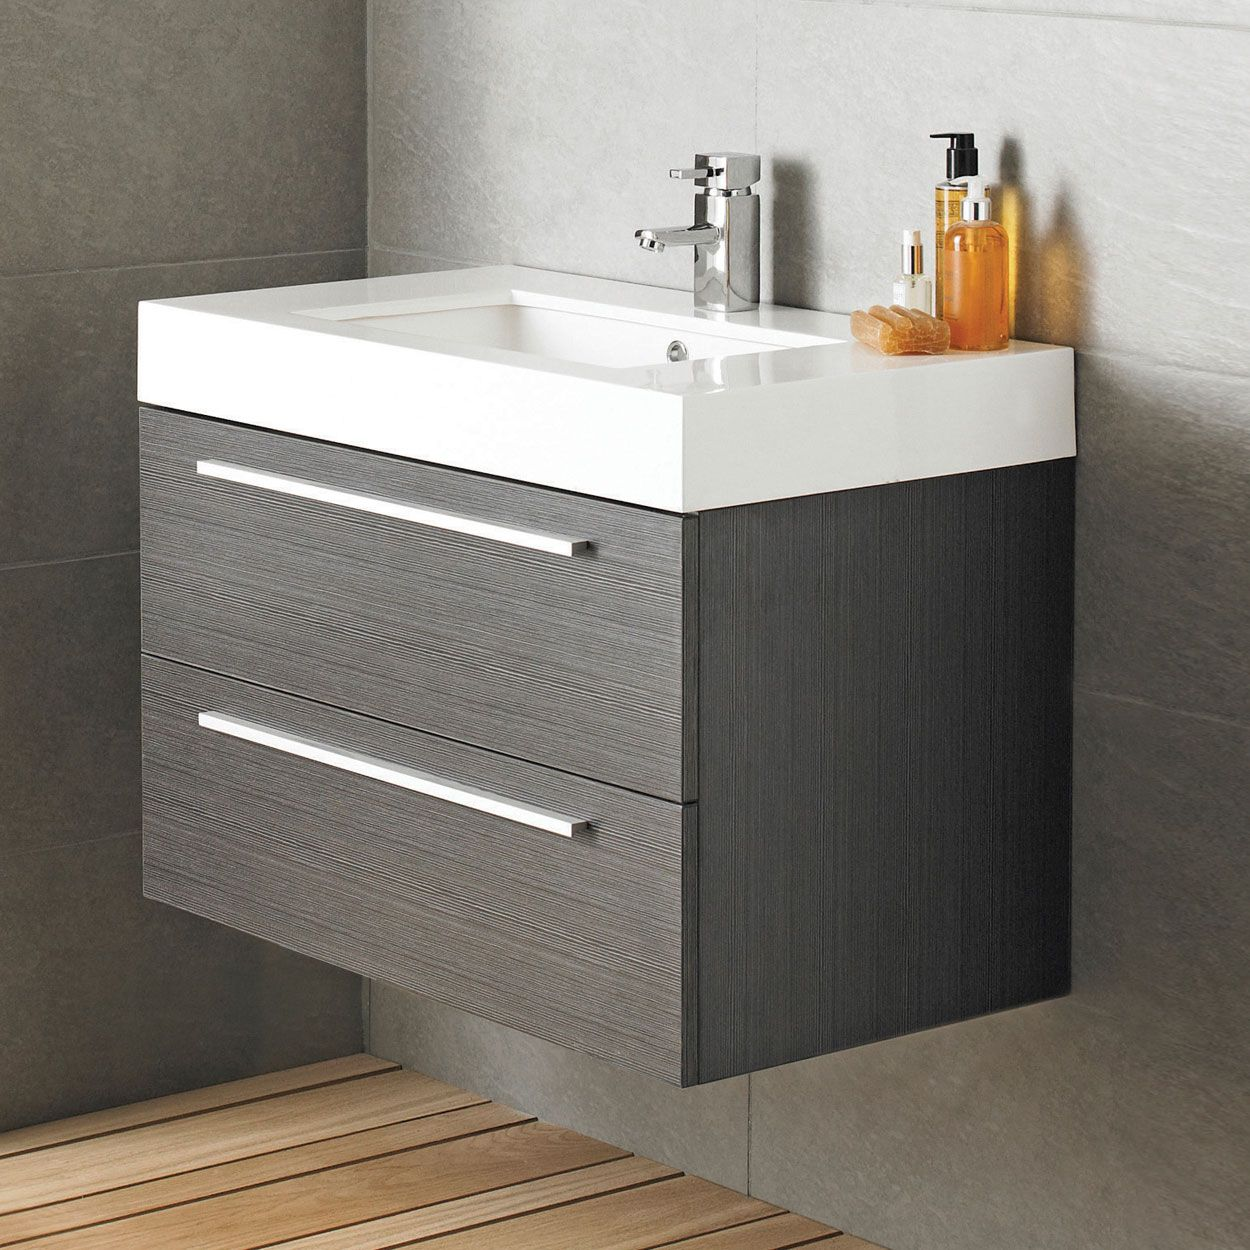 Vienna Wall Mounted Bathroom Vanity Unit 800mm Wide Textured